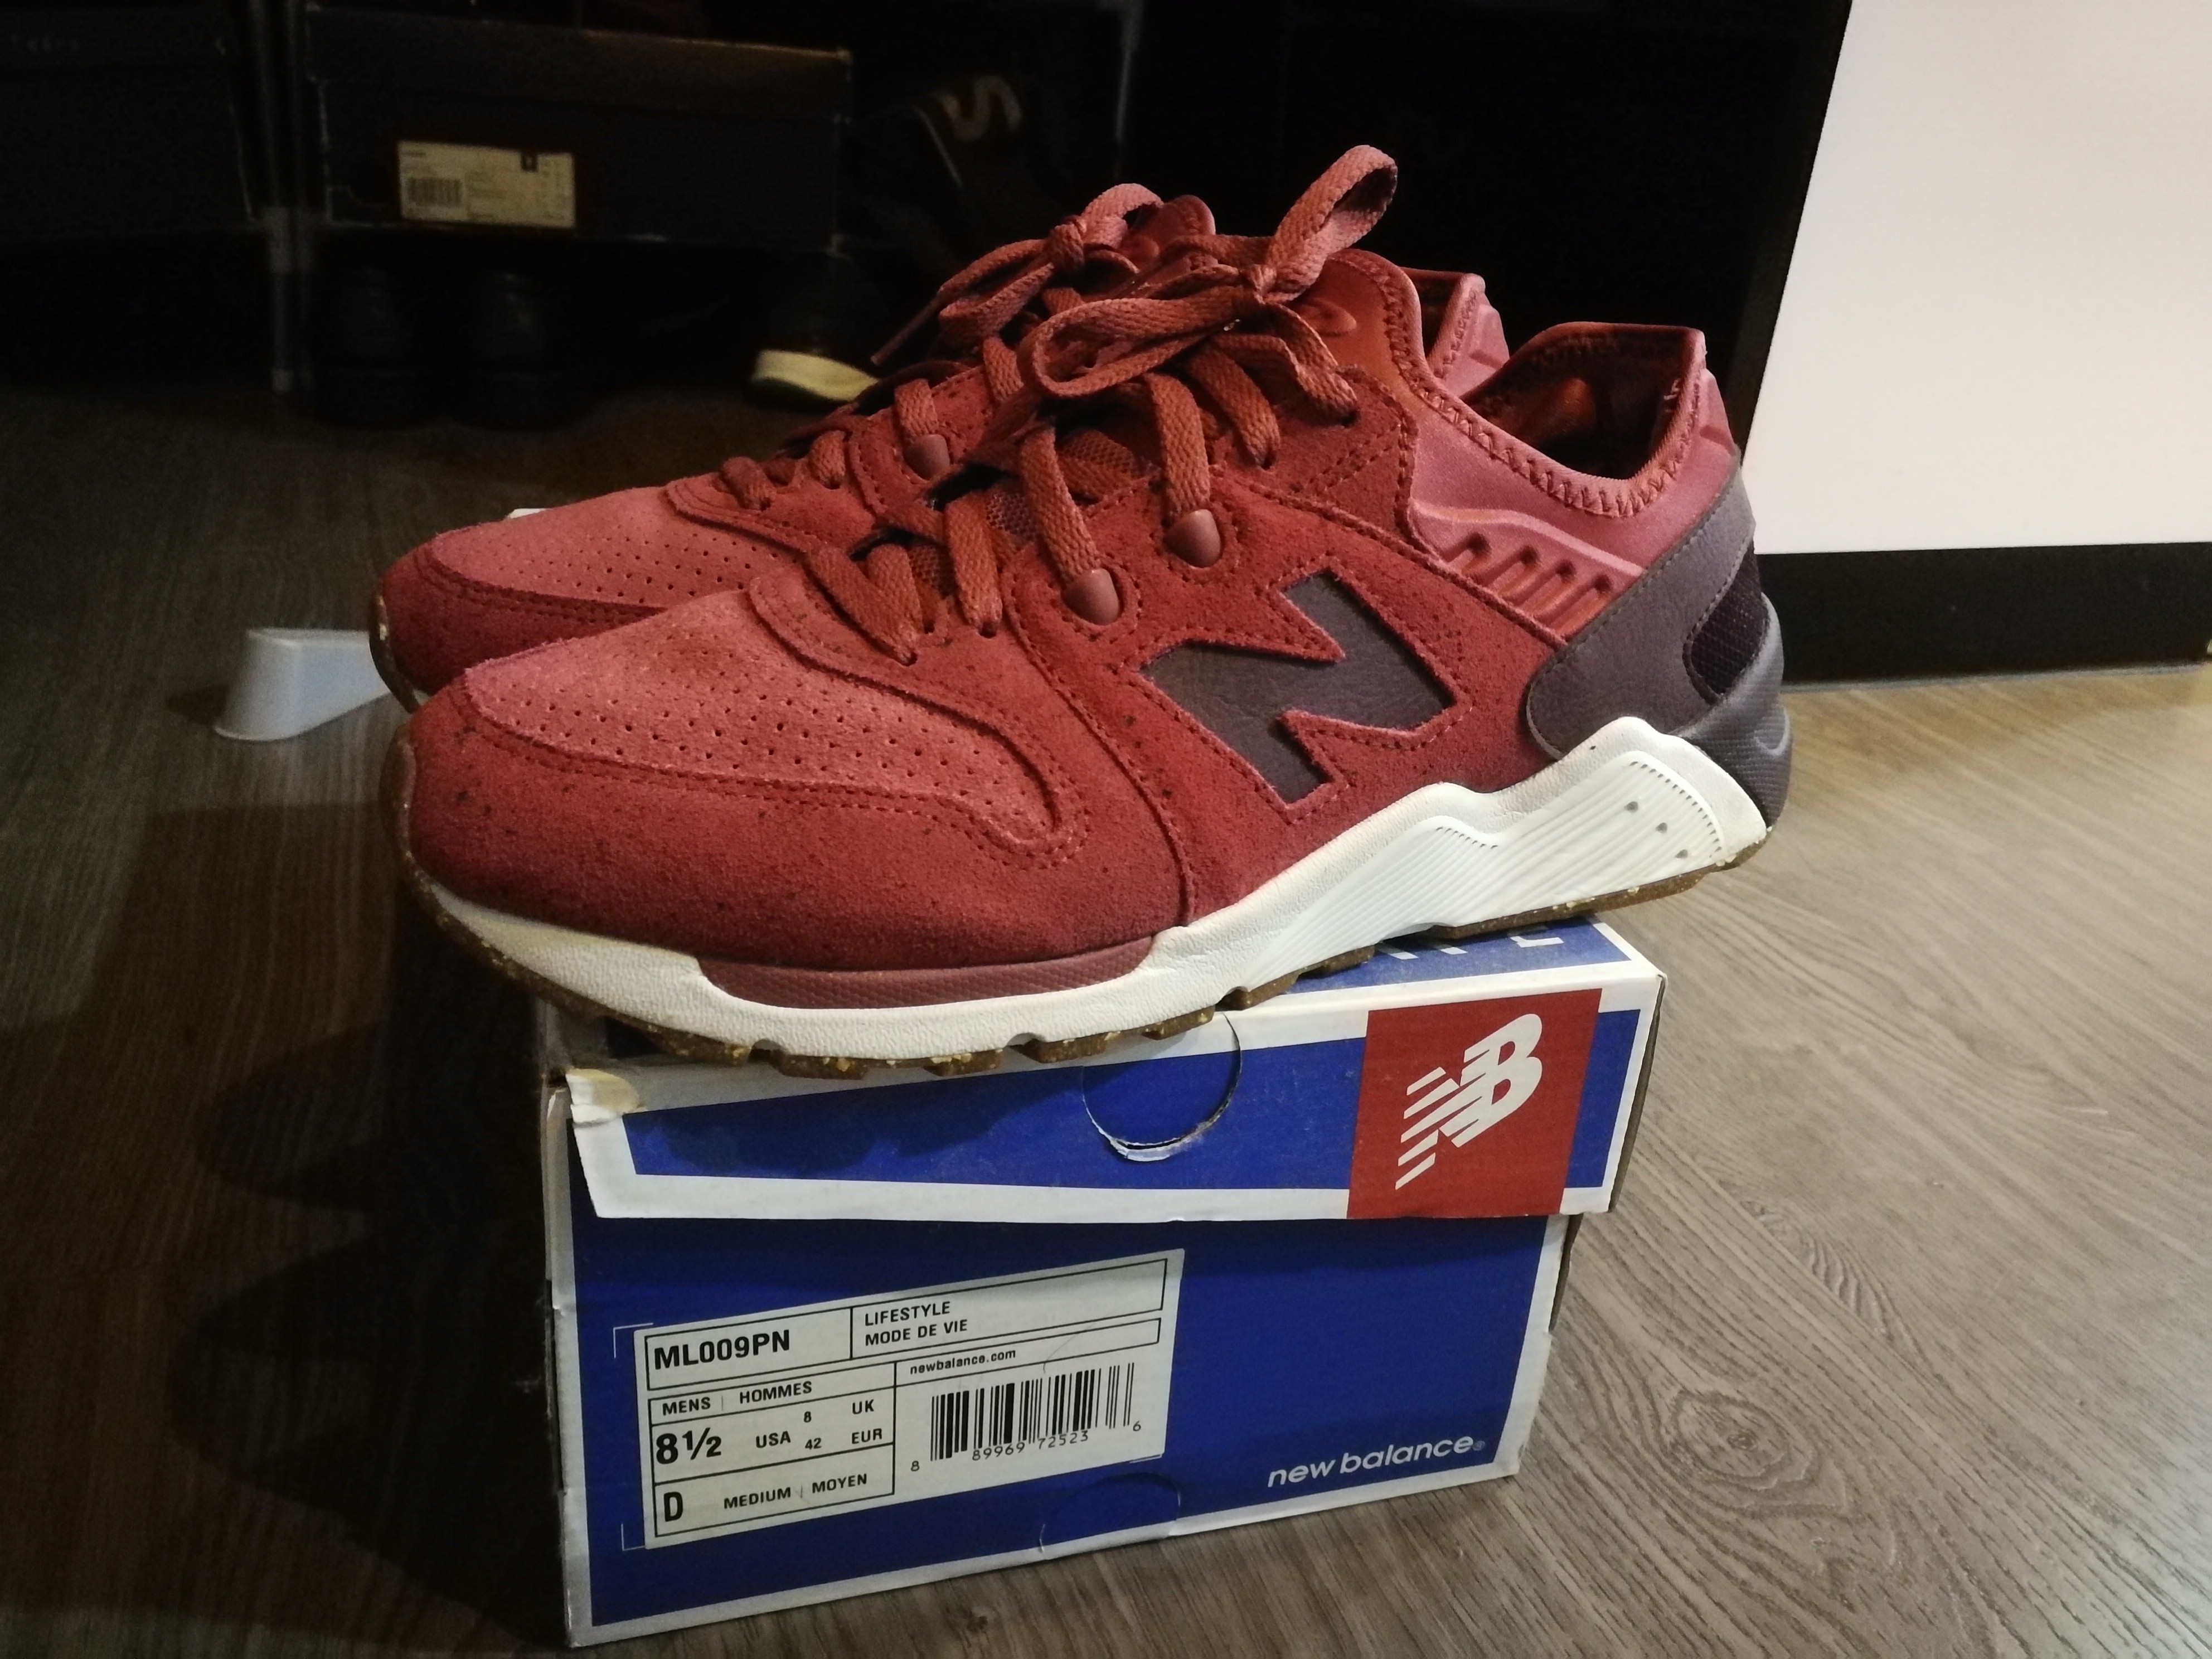 d3c5d6a9ac New Balance Shoes, Men's Fashion, Footwear, Sneakers on Carousell